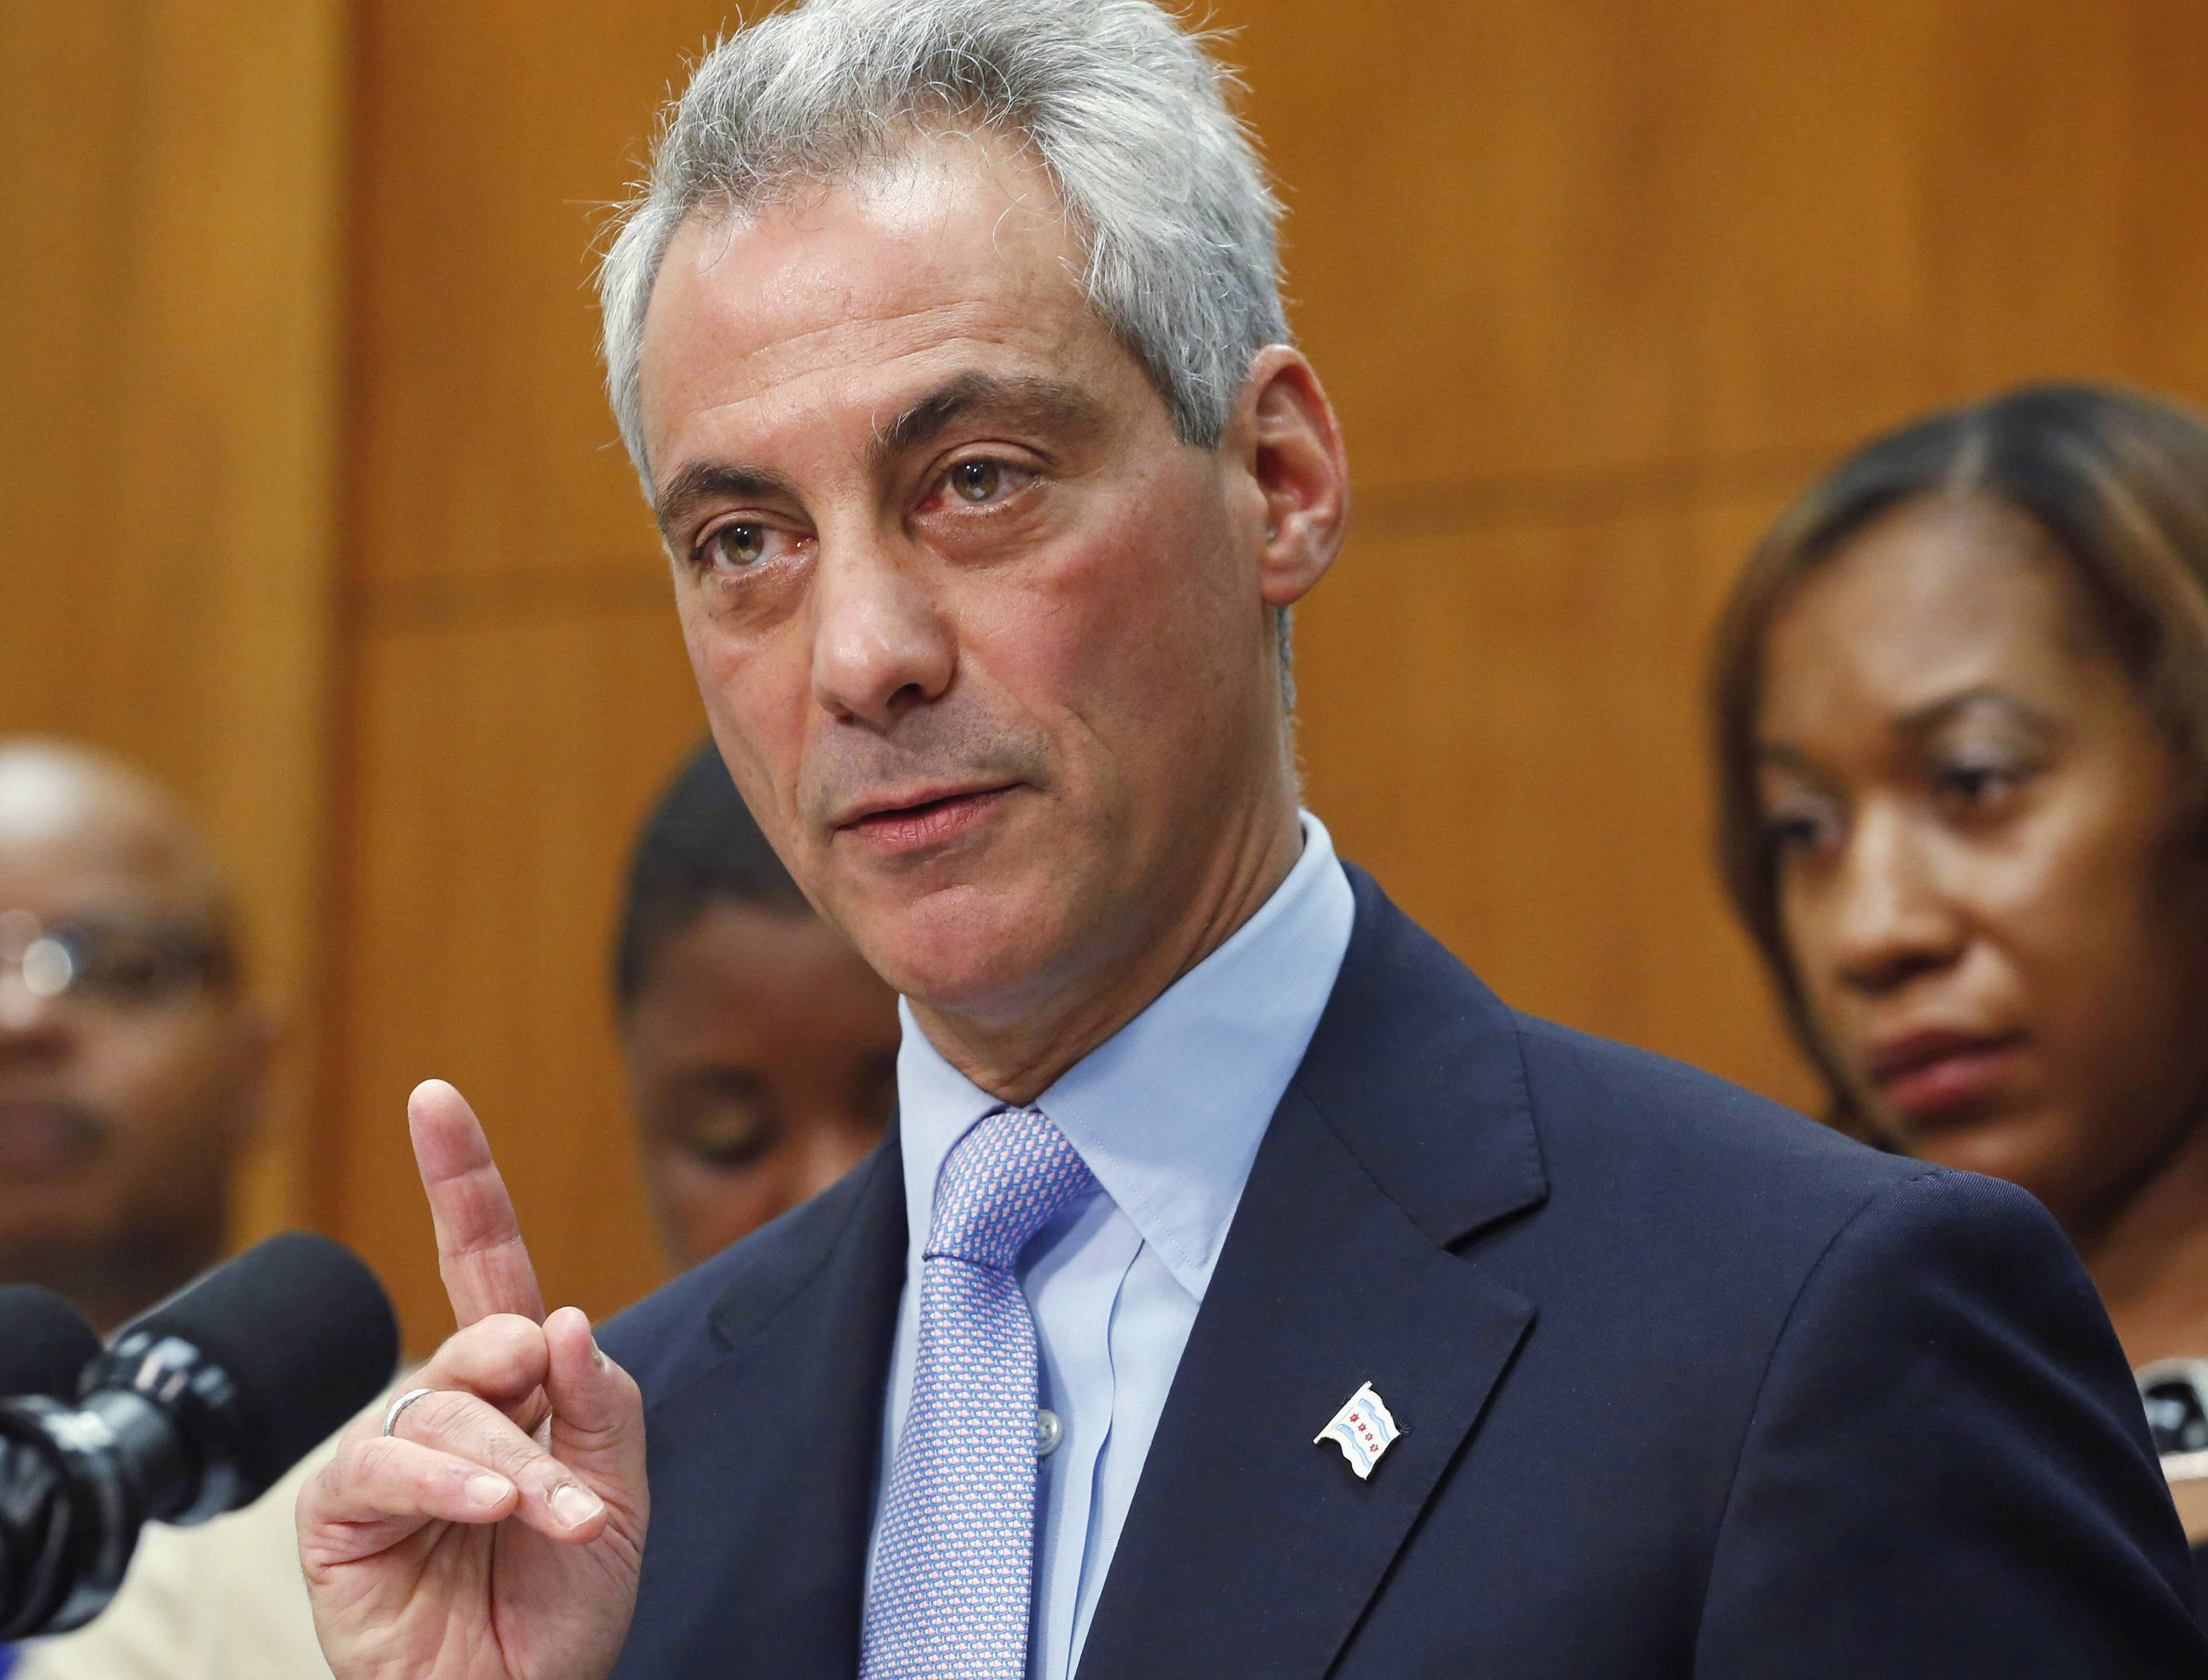 Chicago Mayor Rahm Emanuel pushed for pension reform.